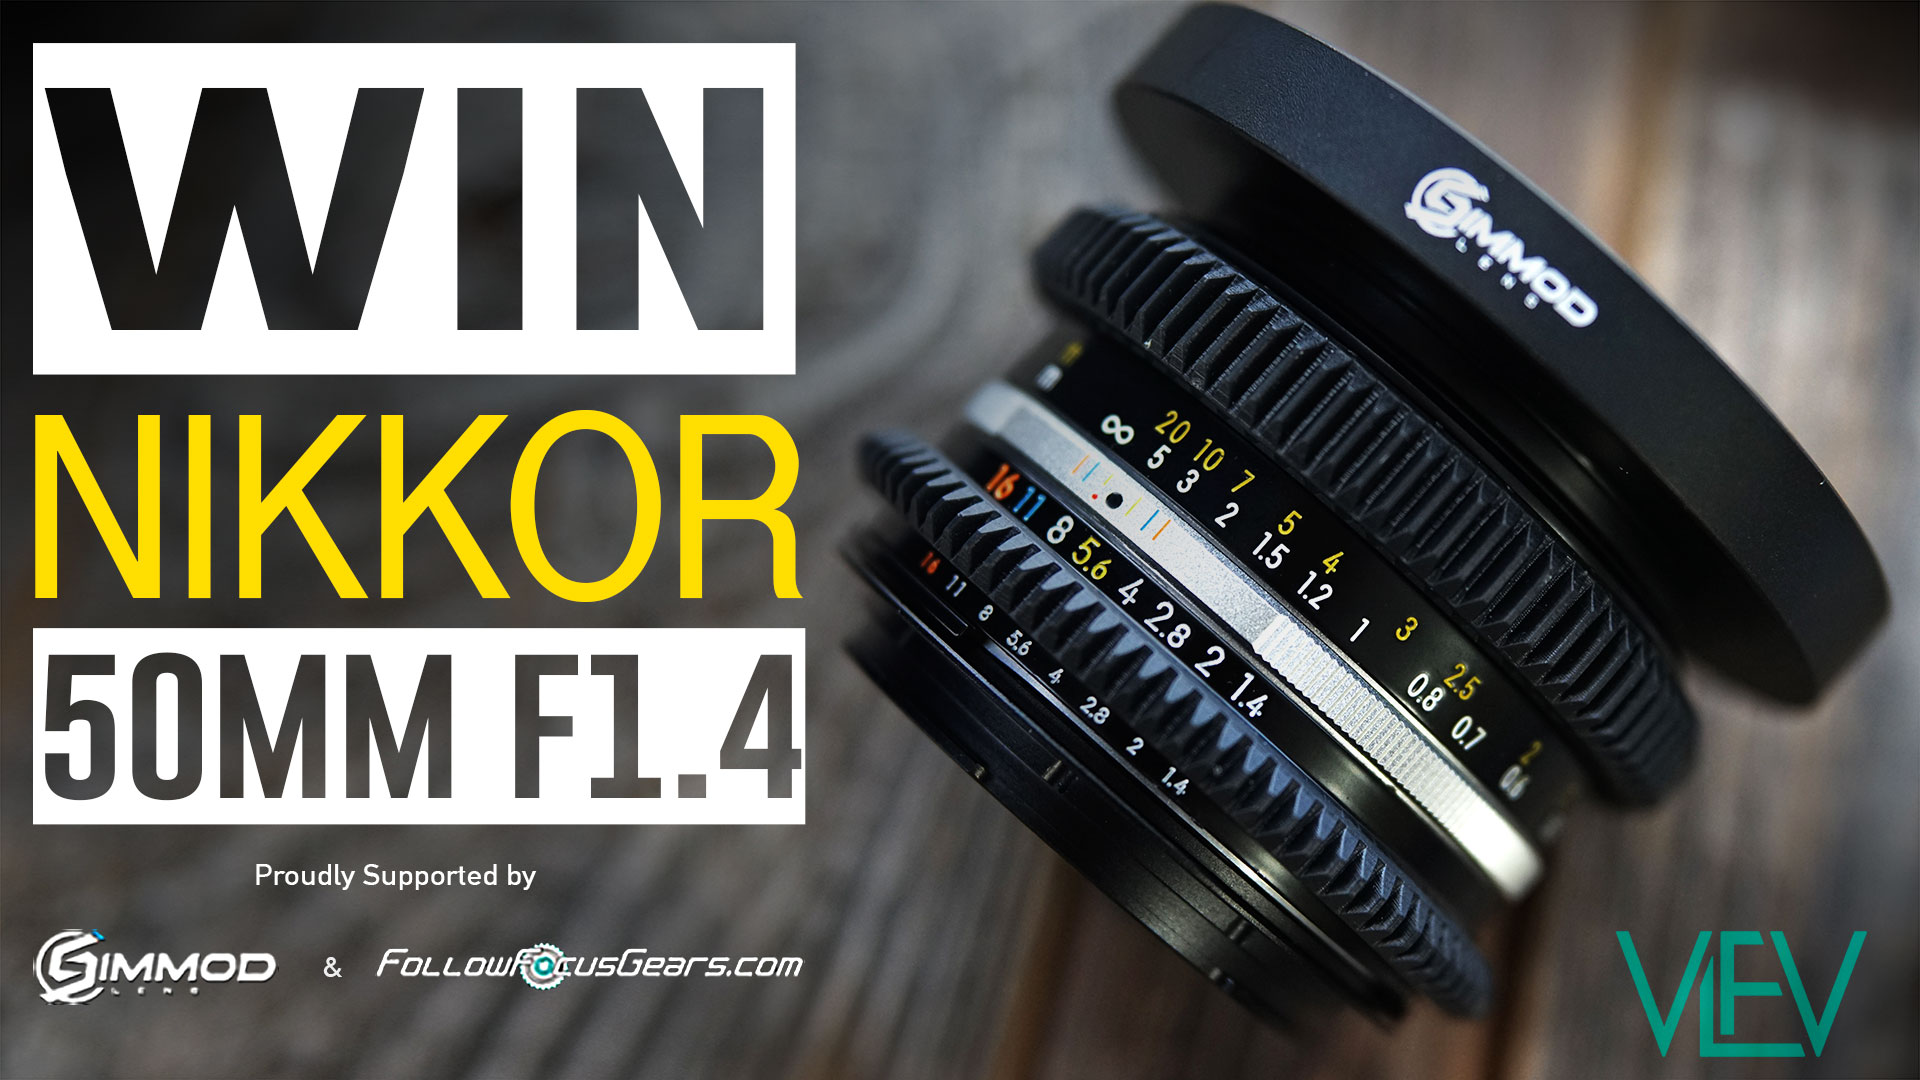 WIN Fully Modded NIKKOR 50mm F1.4 Lens!